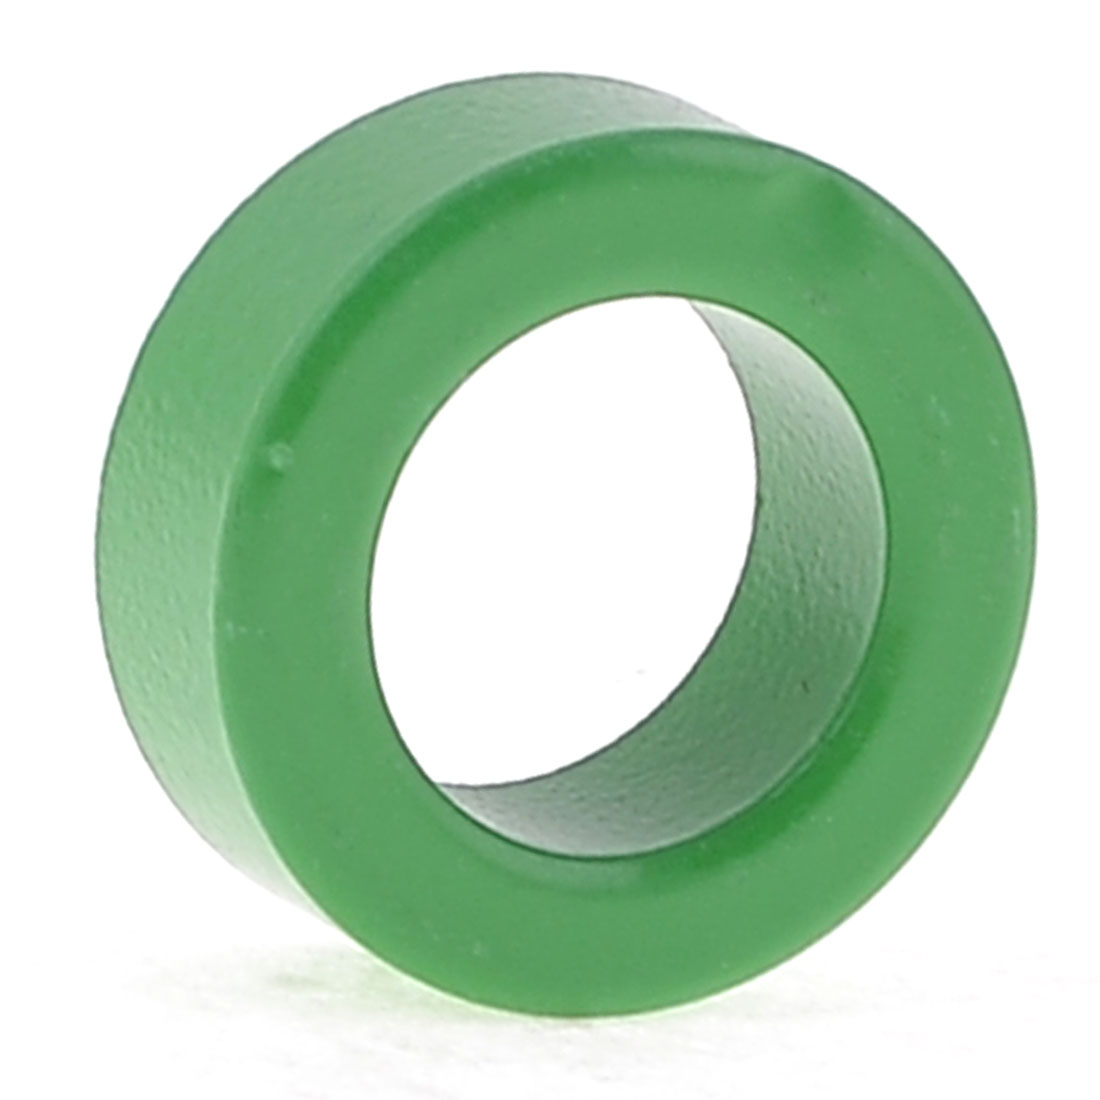 22mm x 14mm x 8mm Green Toroid Ferrite Core for Inductors